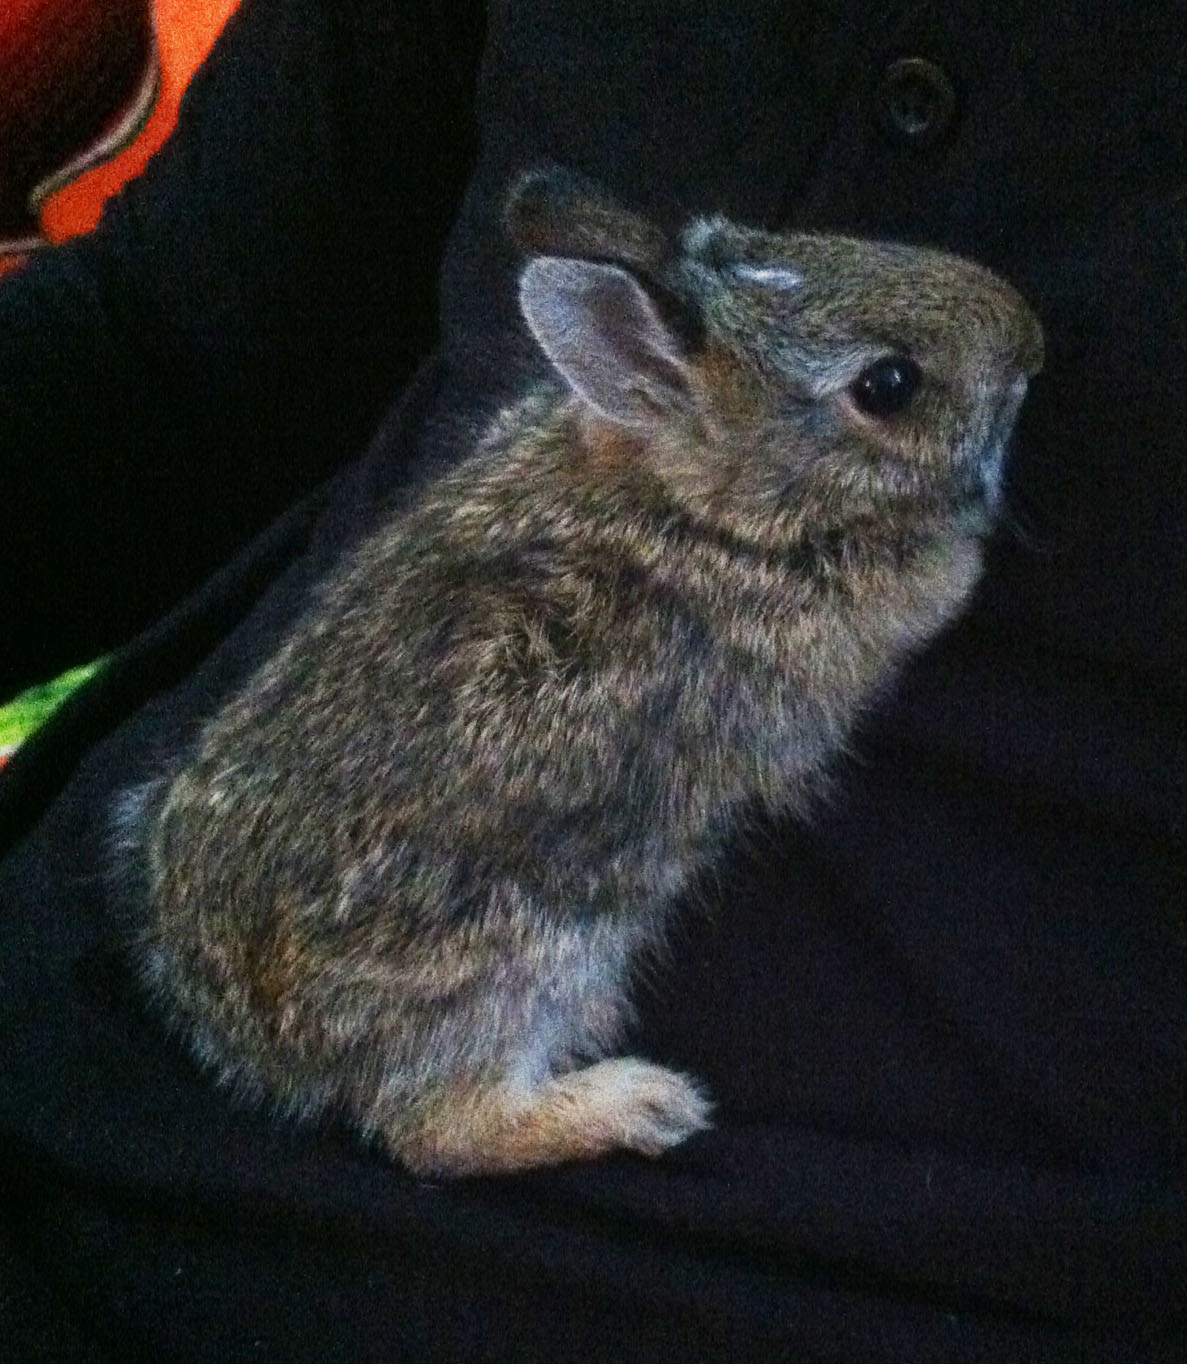 Benny the Bunny! March 2016 - April 2016